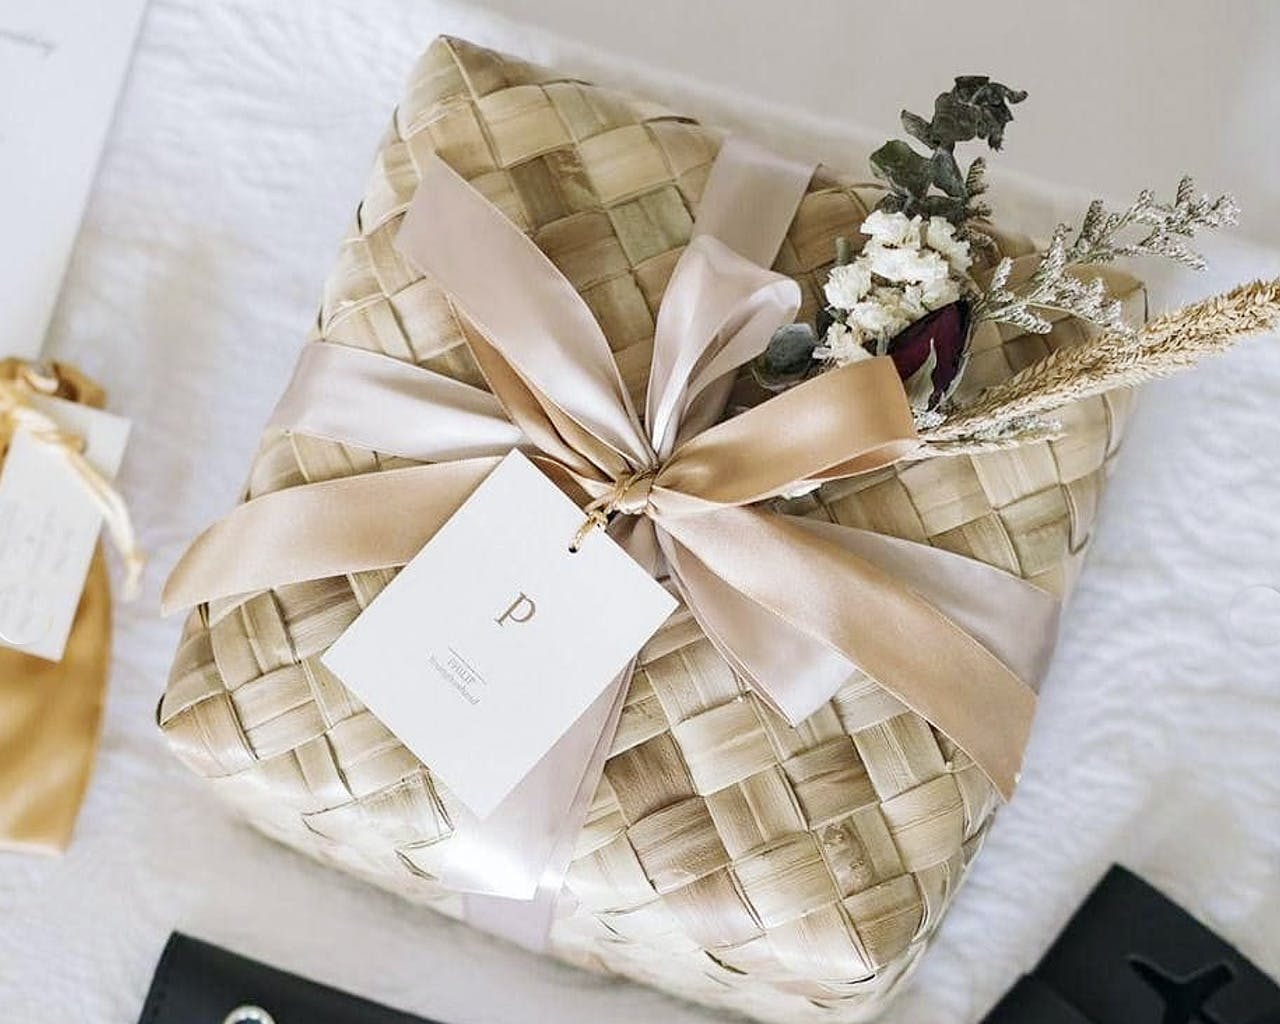 7 Shops That Curate Gift Boxes For Weddings, Birthdays, And Other Special Occasions